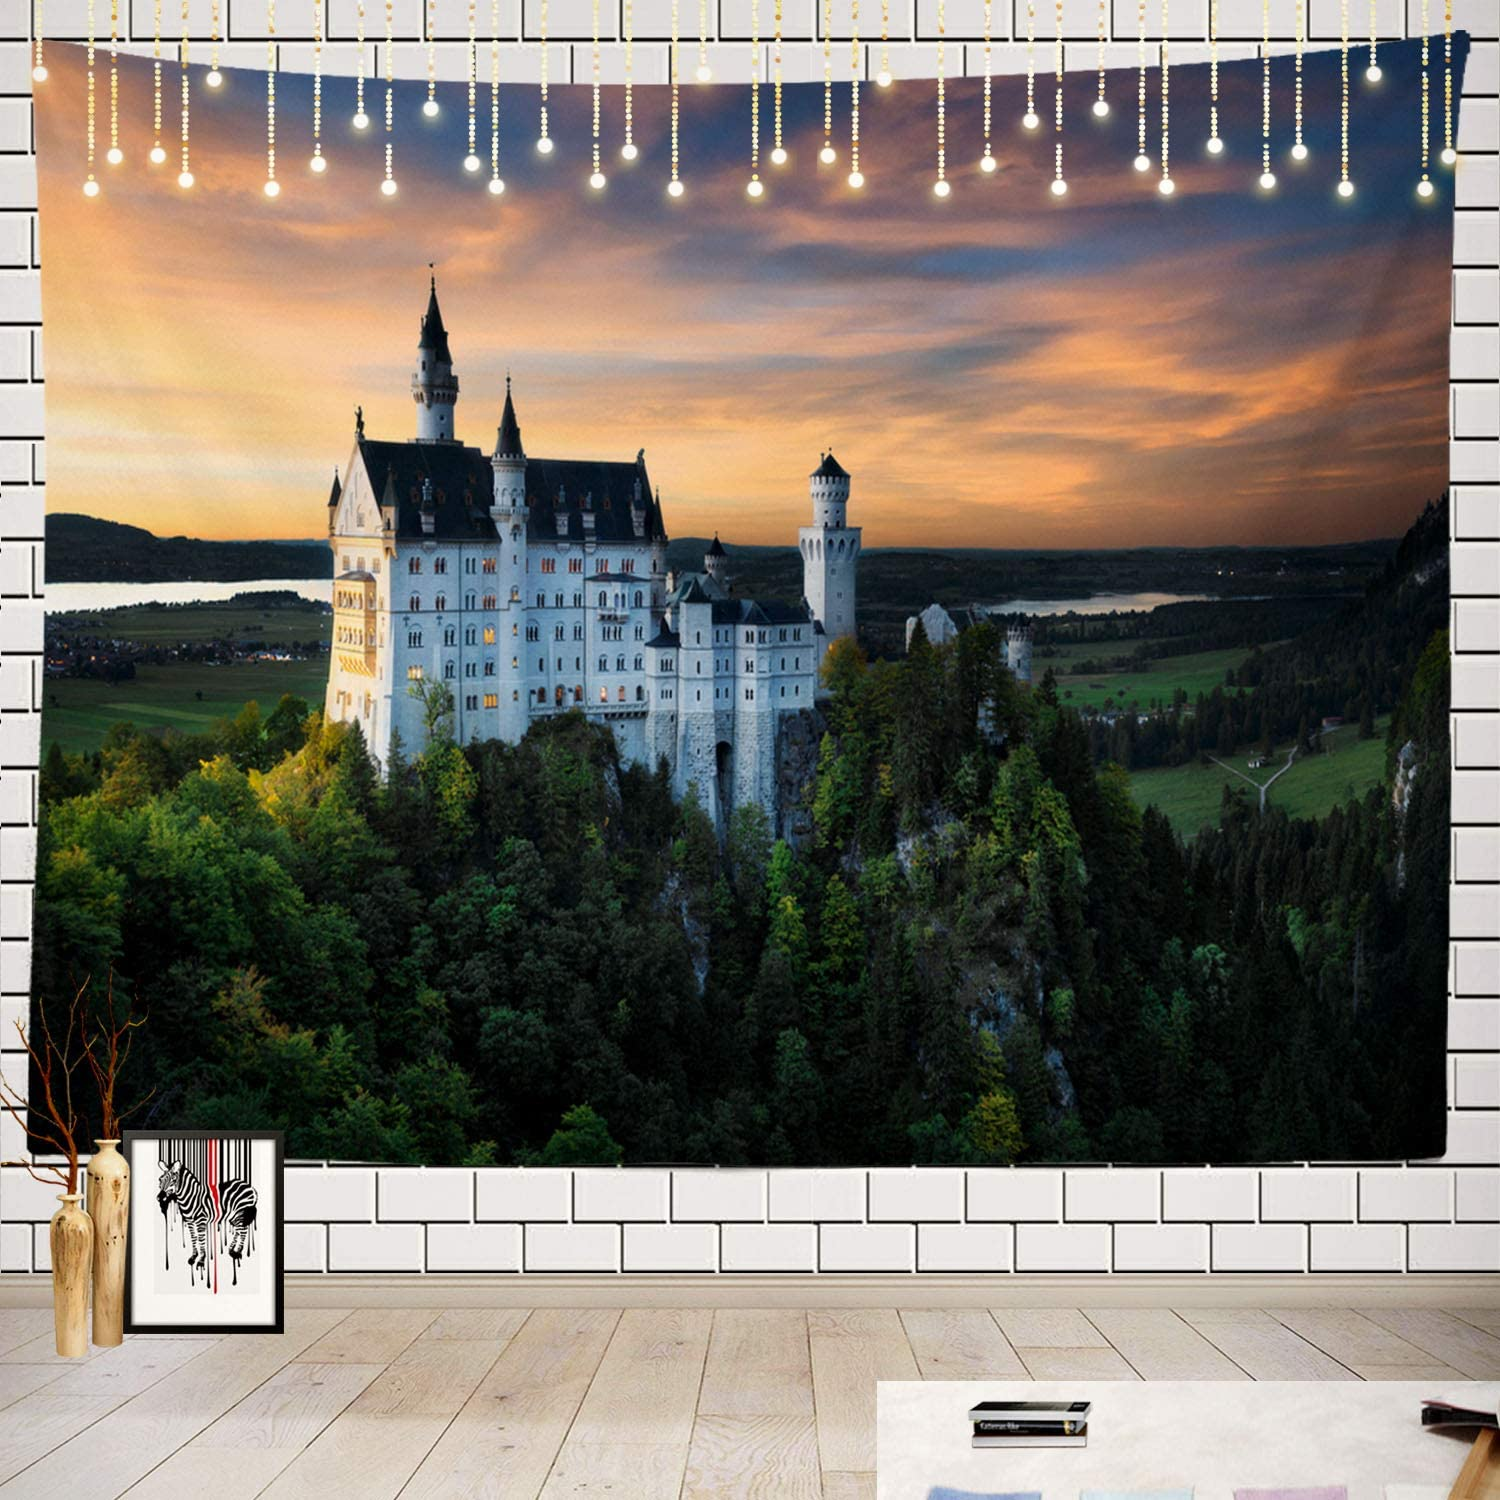 Batmerry Beautiful Tapestry, Beautiful World Famous Neuschwanstein Castle Colorful Picnic Mat Hippie Trippy Tapestry Wall Art Meditation Decor for Bedroom Living Room Dorm, 51.2 x 59.1 Inches, Dusk